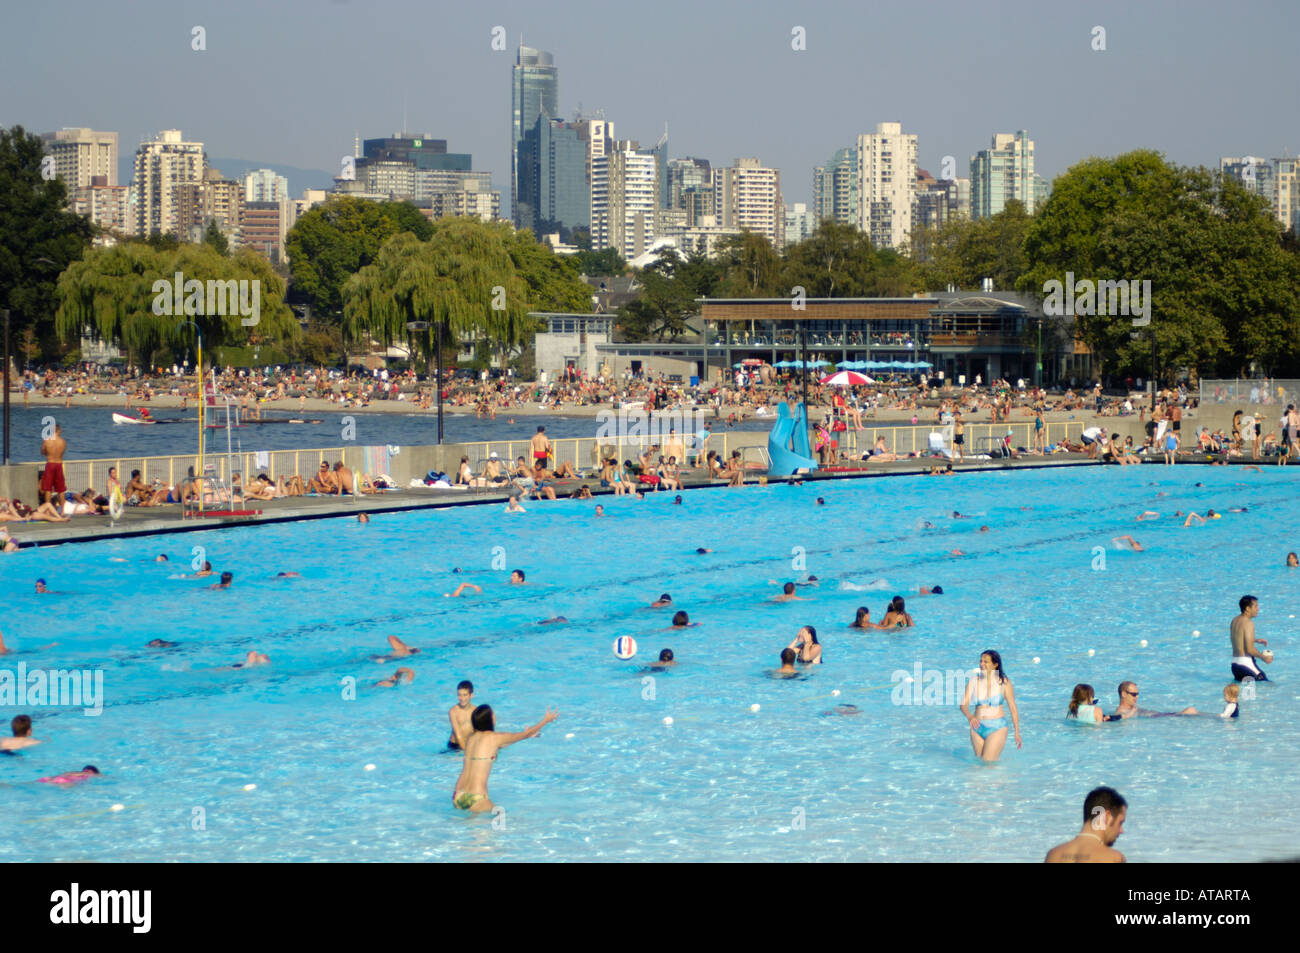 Kitsilano Pool Canada 39 S Longest Swimming Pool At 137 Metres Is Stock Photo Royalty Free Image